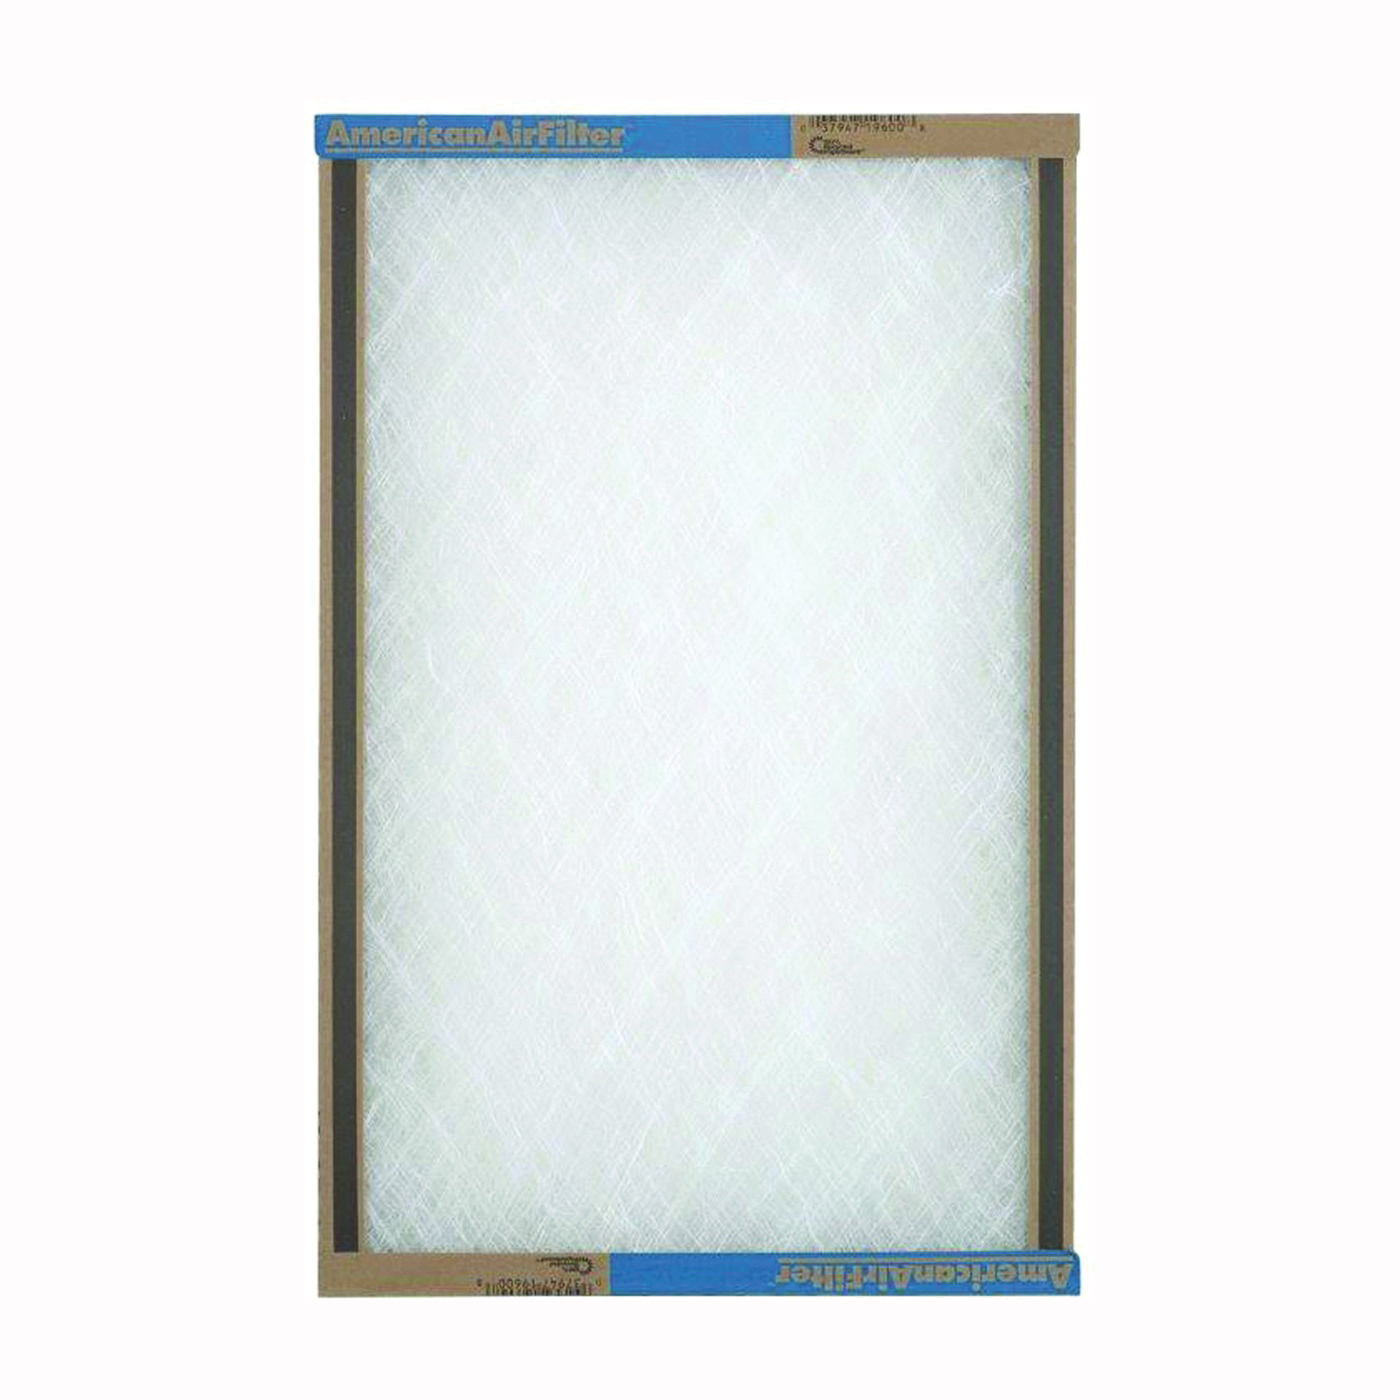 Picture of AAF 124301 Panel Filter, 30 in L, 24 in W, Chipboard Frame